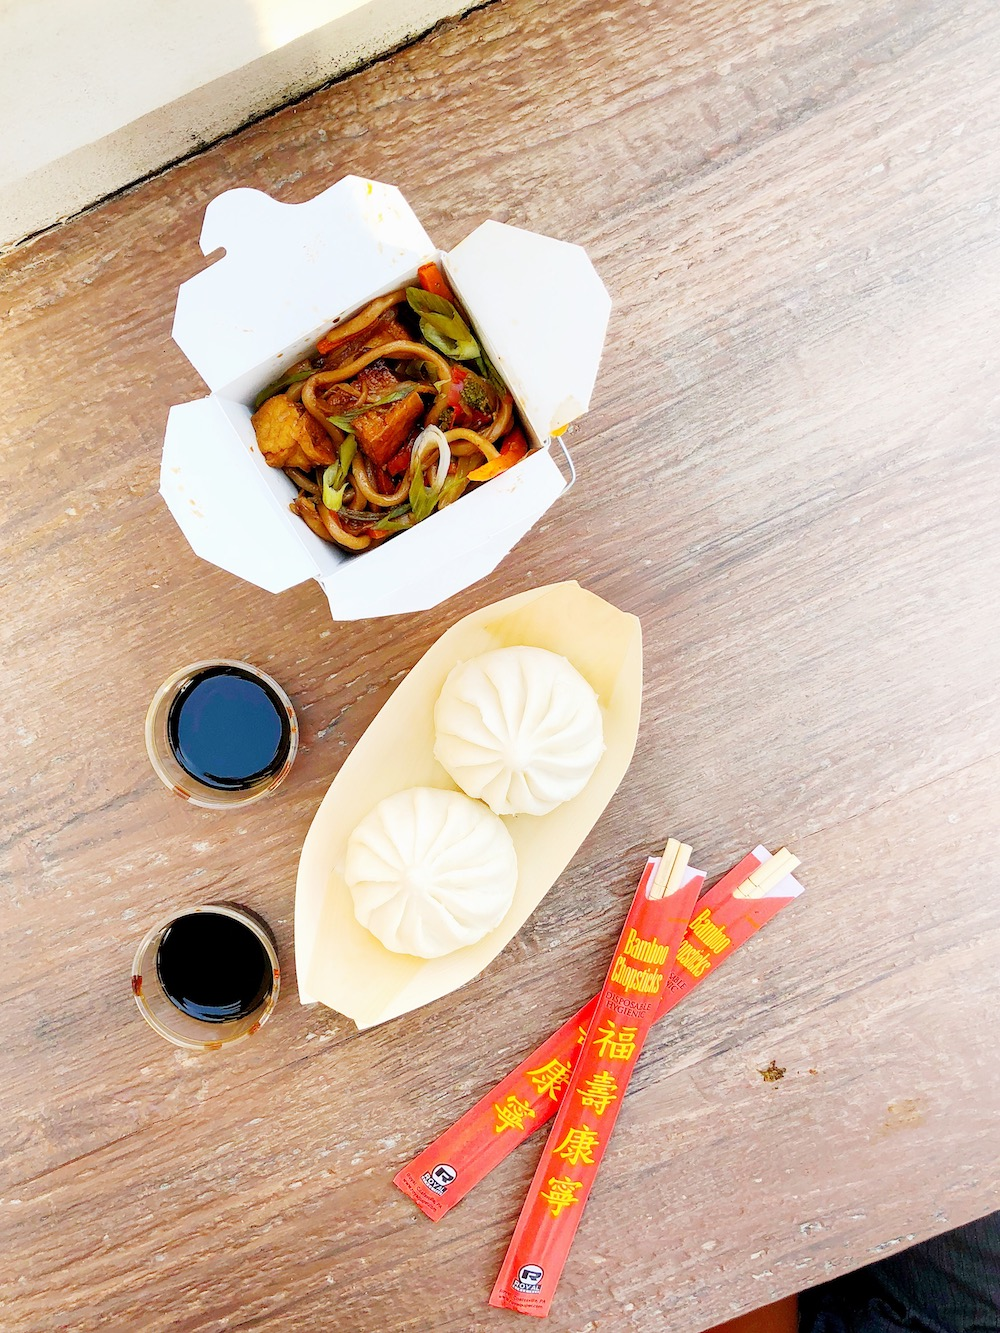 Chow mein noodles with tofu and bbq pork dumplings - livingmividaloca.com